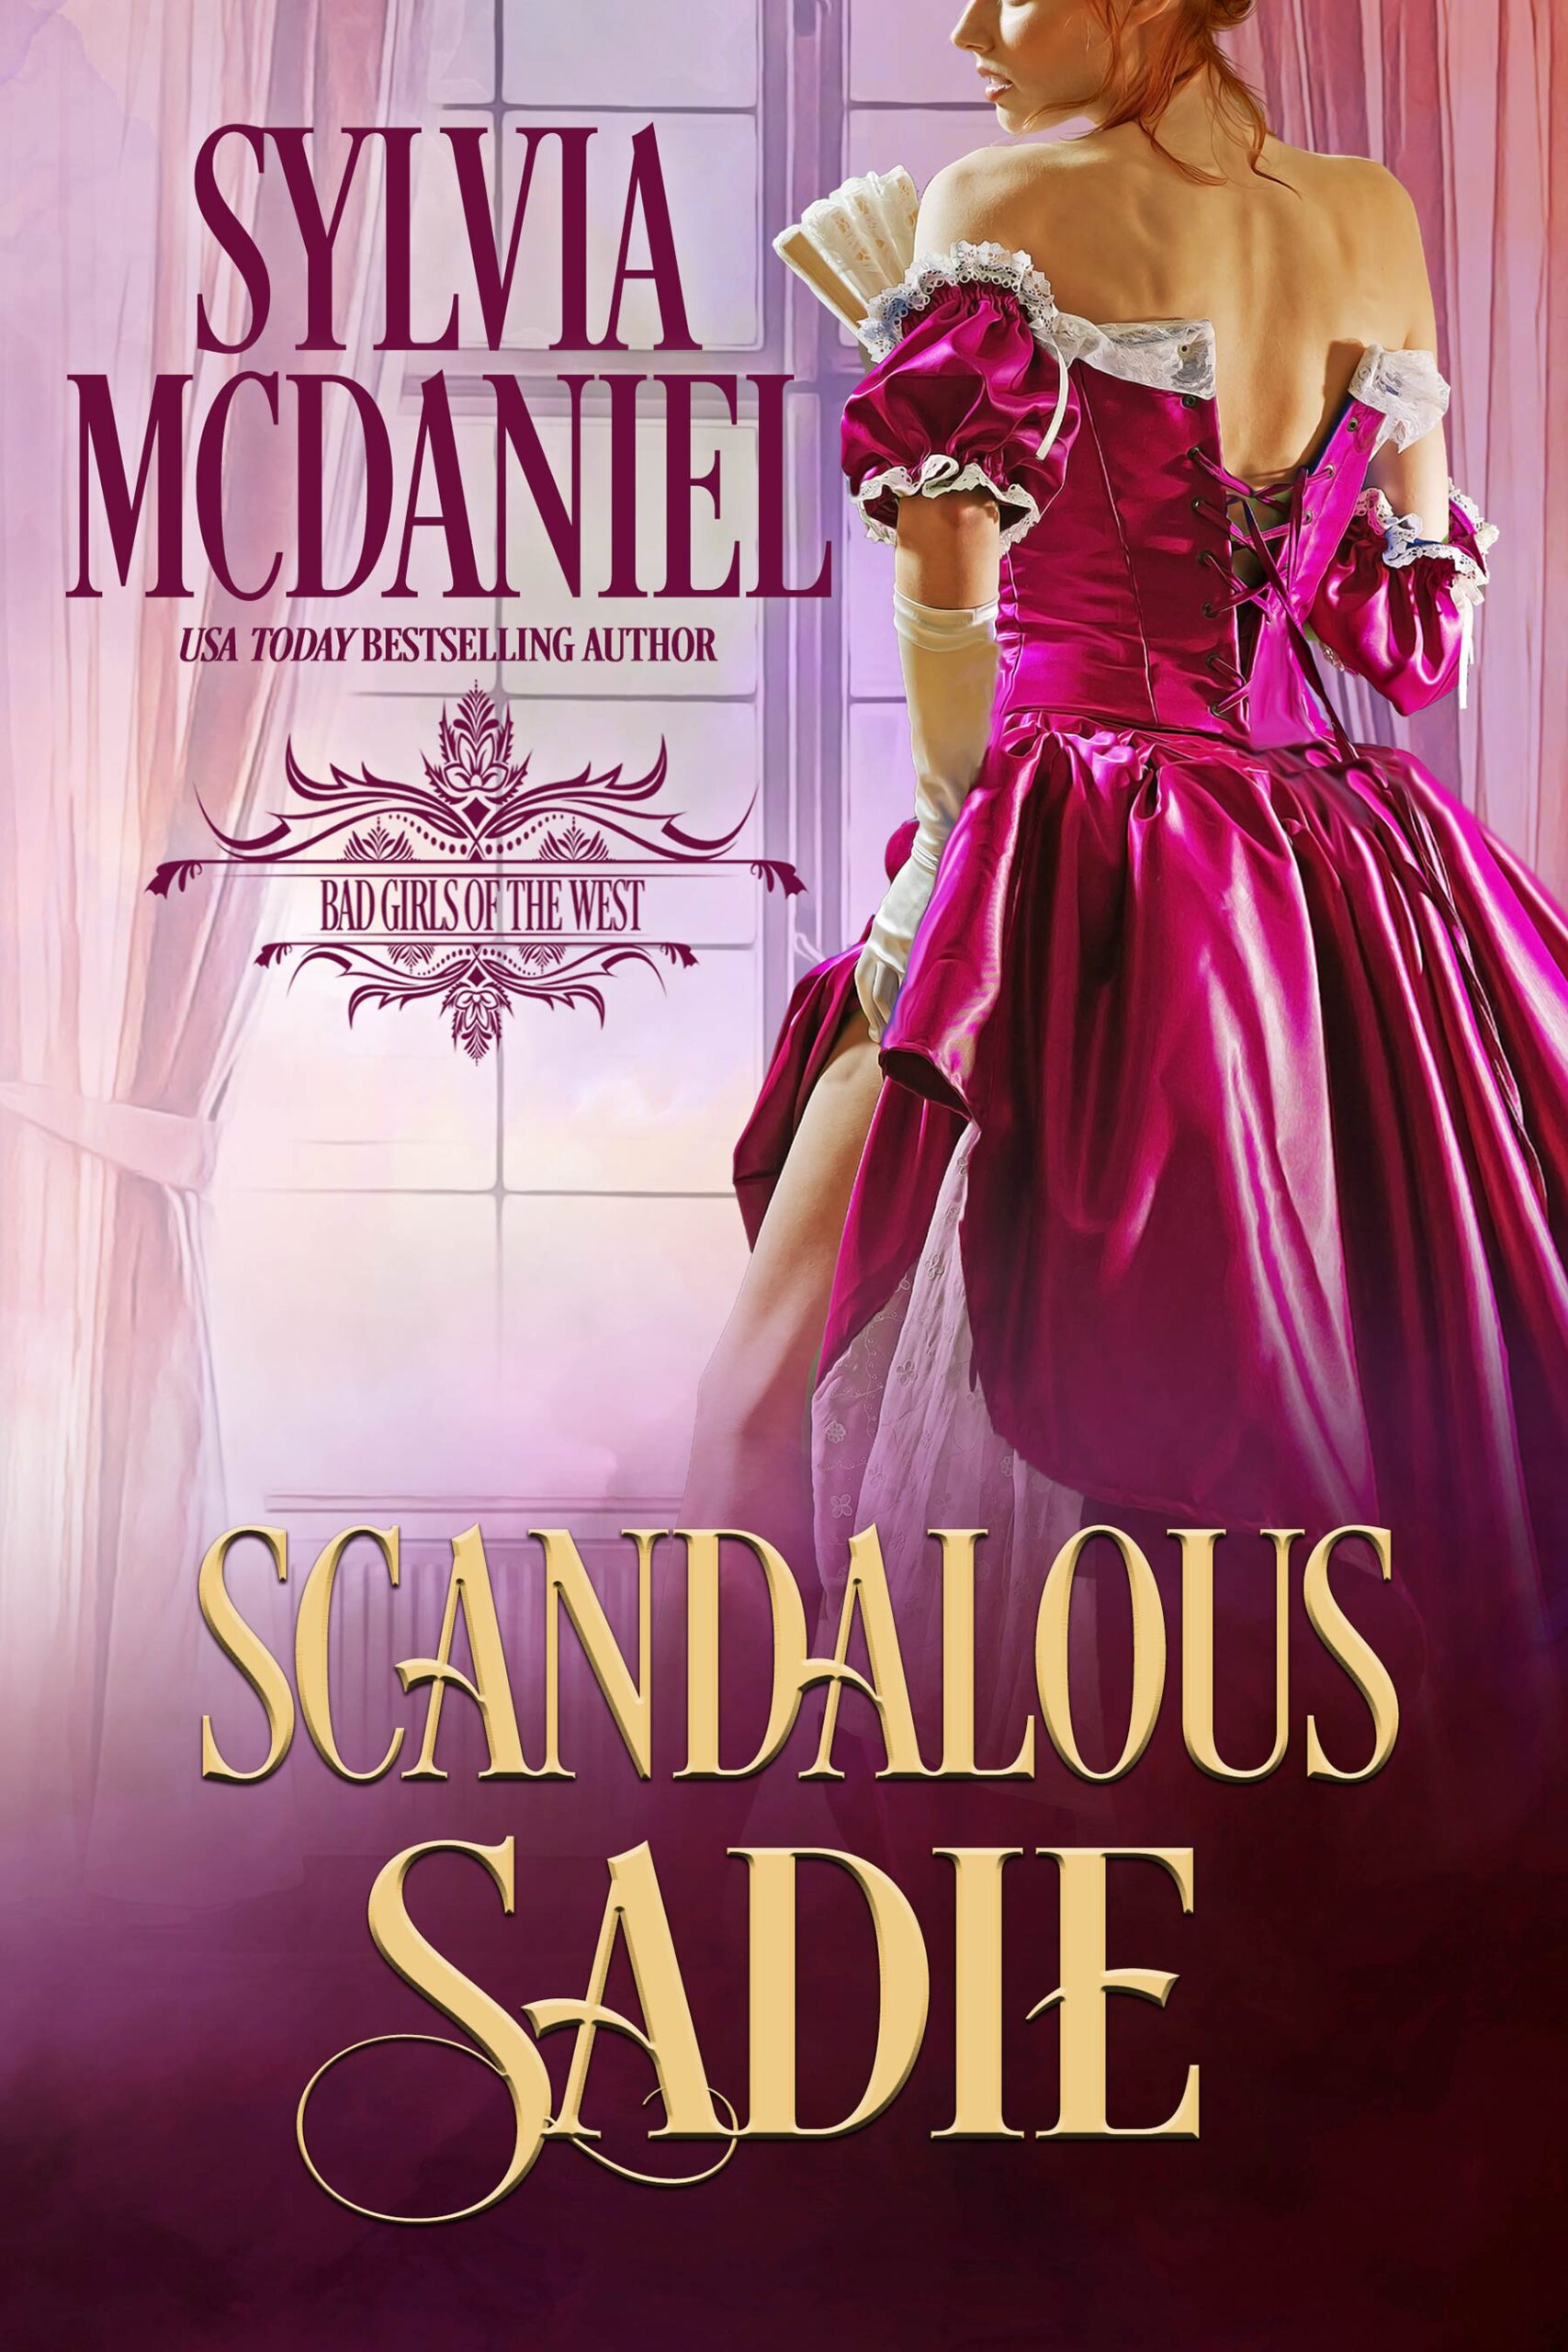 Book cover of Scandalous Sadie by Sylvia McDaniel. Blonde woman in a pink dress with her leg showing.